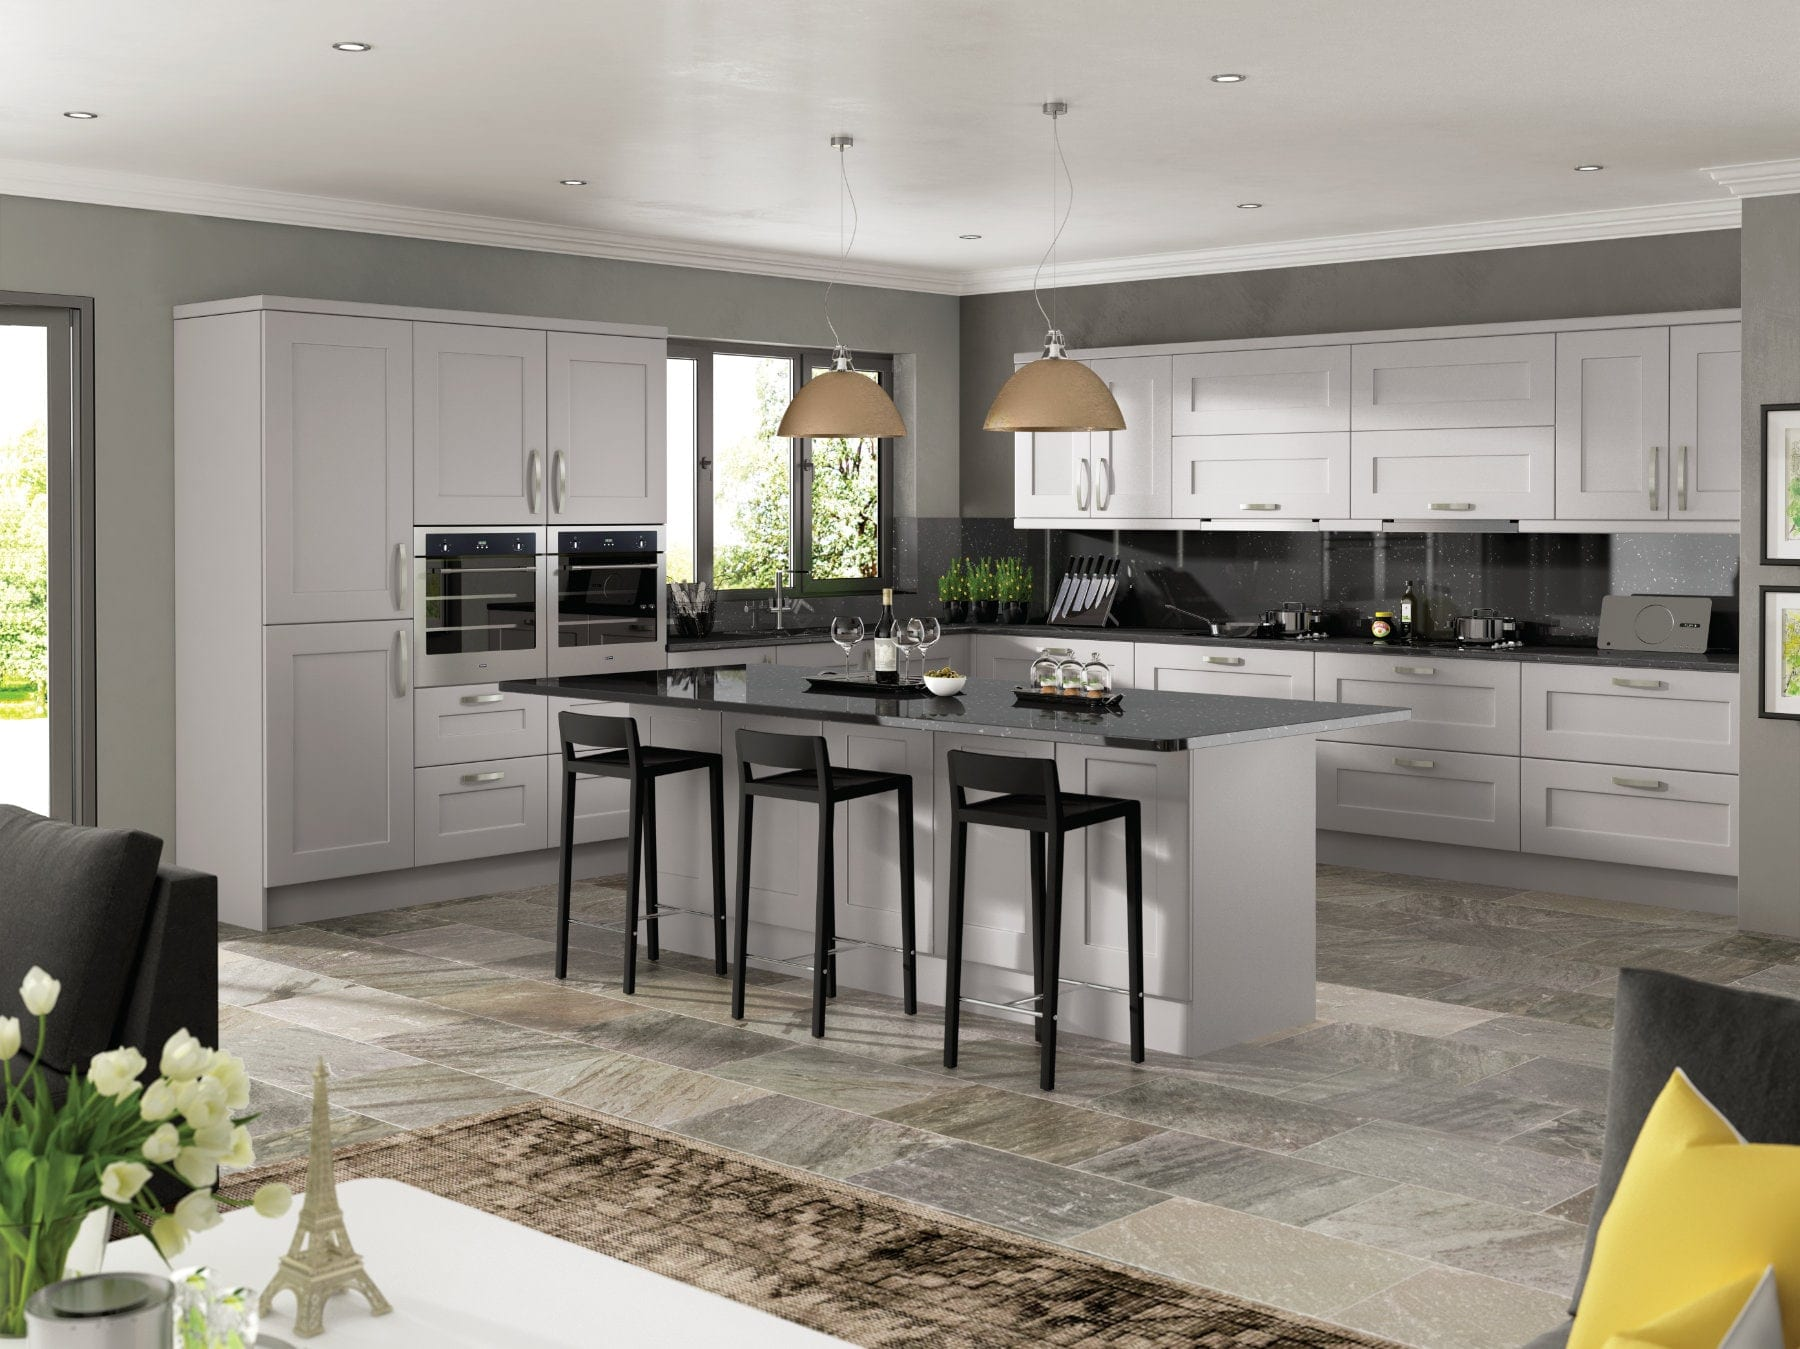 Jjo Solent Kashmir Open Plan L-Shaped Kitchen With Island | Right Choice Kitchens, South Wales